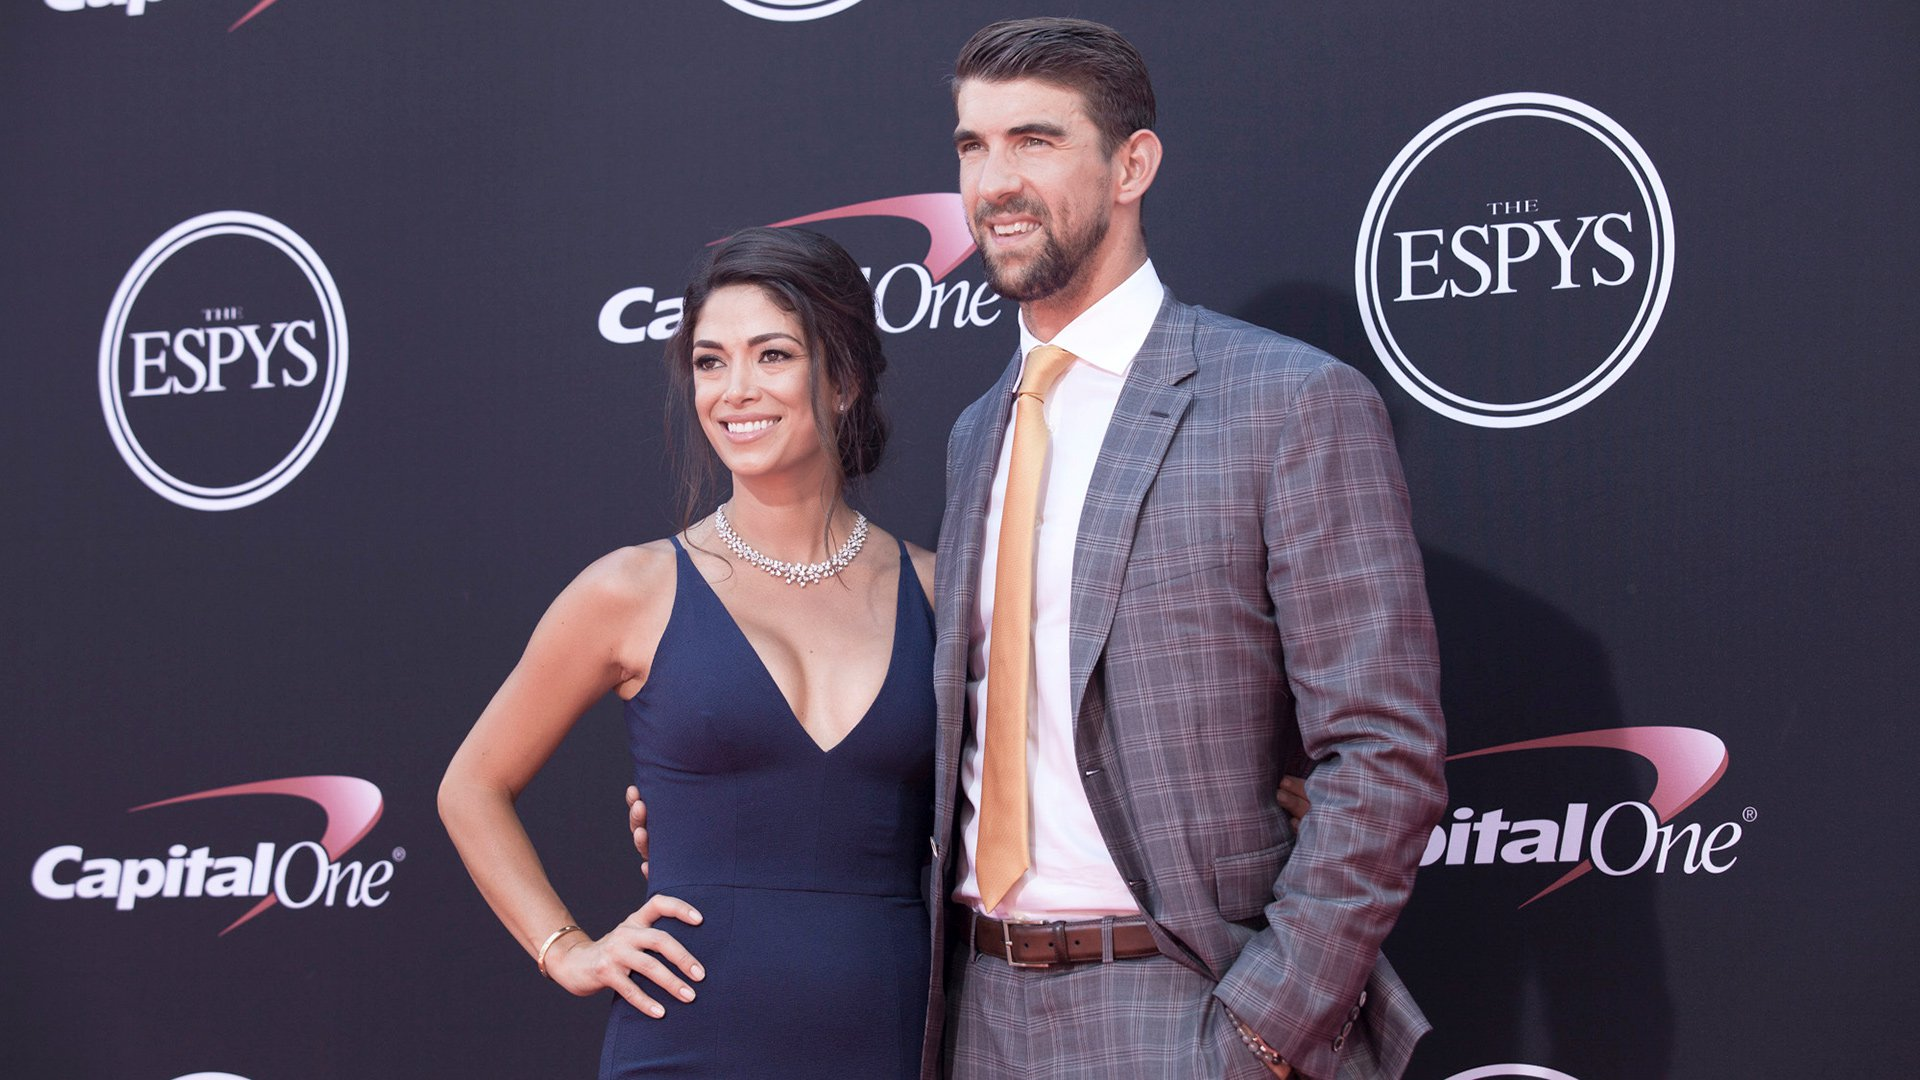 Olympic Gold Medal Swimmer Michael Phelps and his wife Nicole Johnson. Phelps won ESPYs for Record-Breaking Performance and Male U.S. Olympic Athlete.